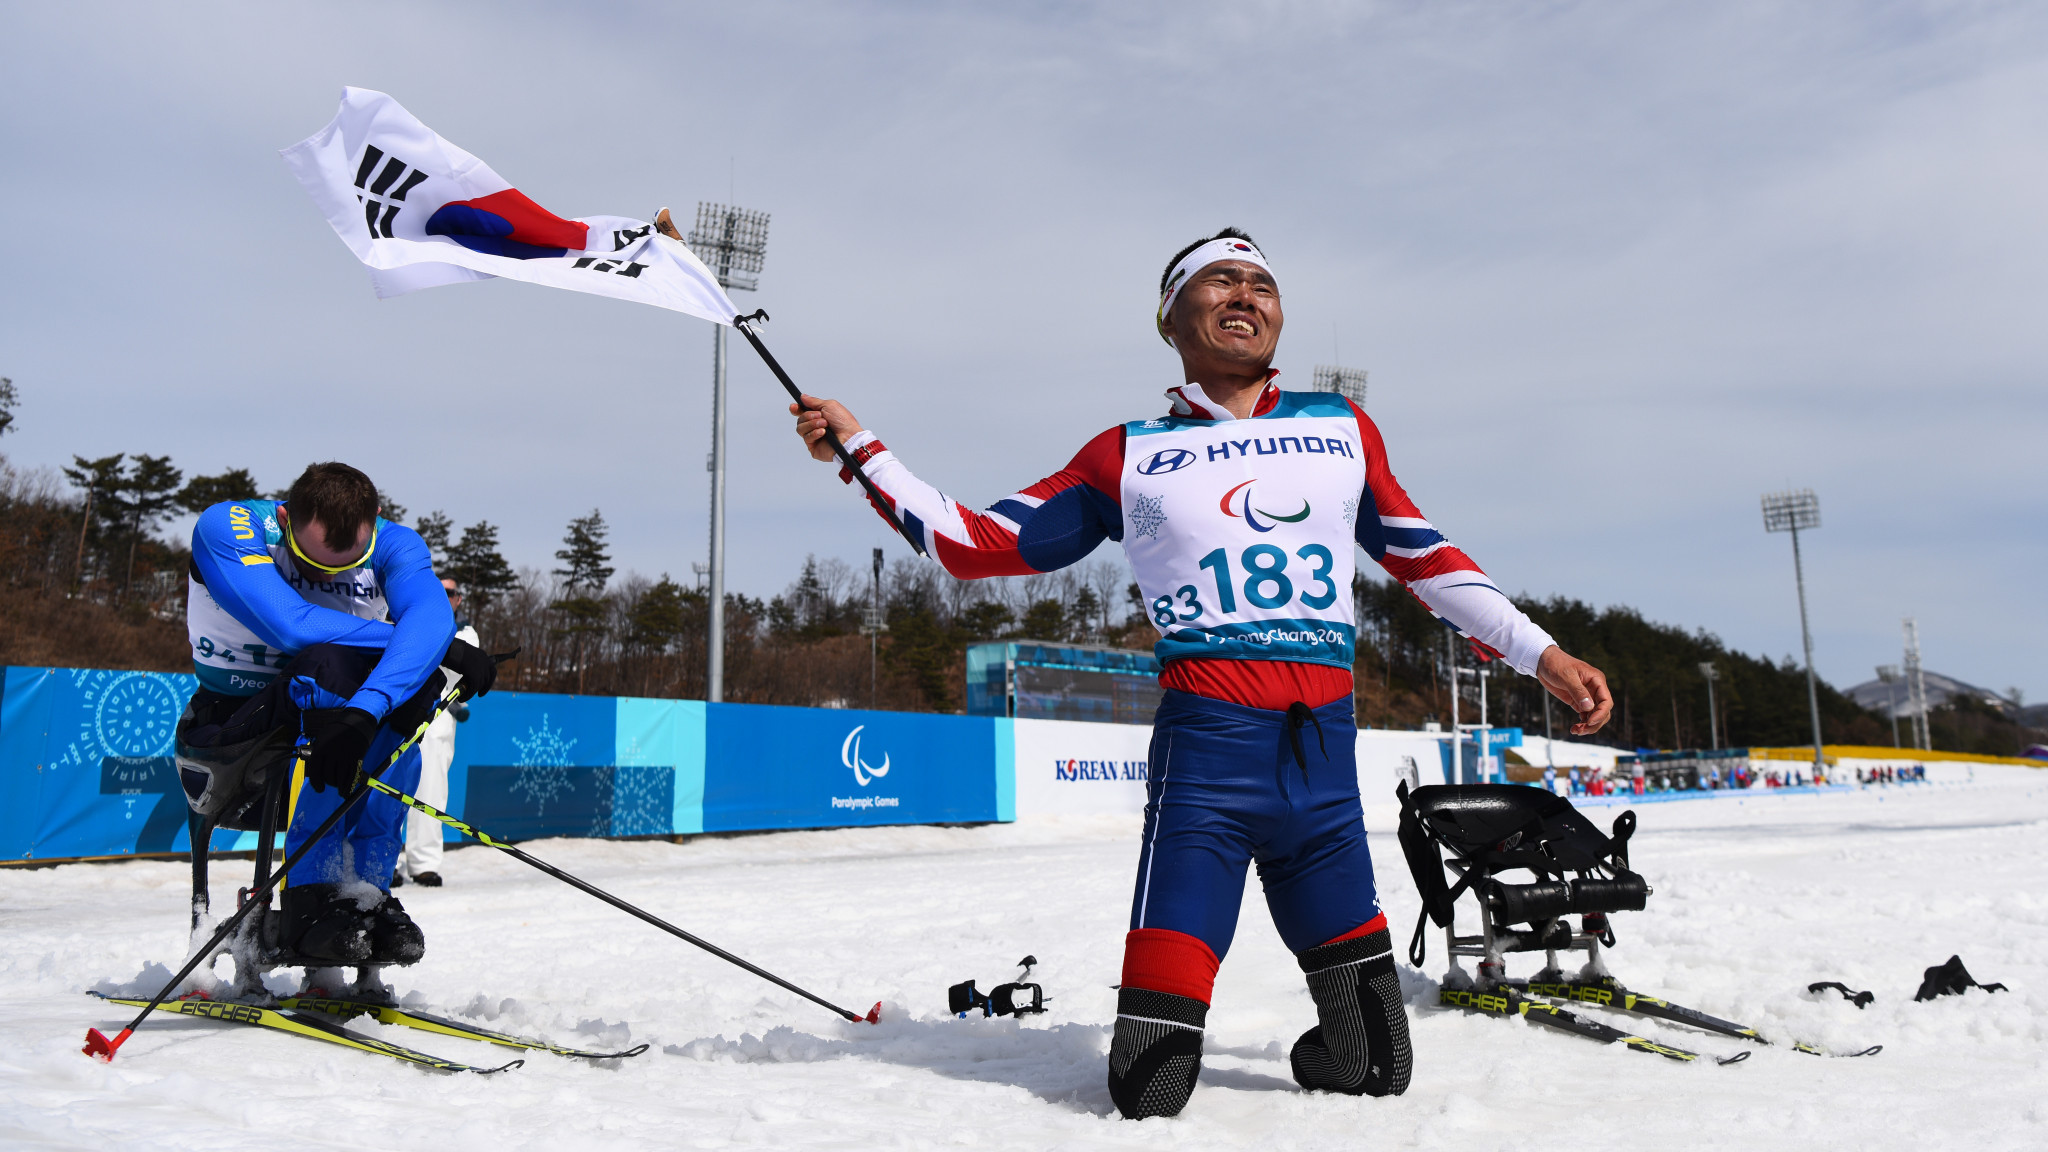 Hosts South Korea were among the countries to win a first-ever Winter Paralympic gold medal at Pyeongchang 2018, thanks to Sin Eui Hyun's stunning performance in the men's cross-country skiing 7.5 kilometres sitting race ©Getty Images